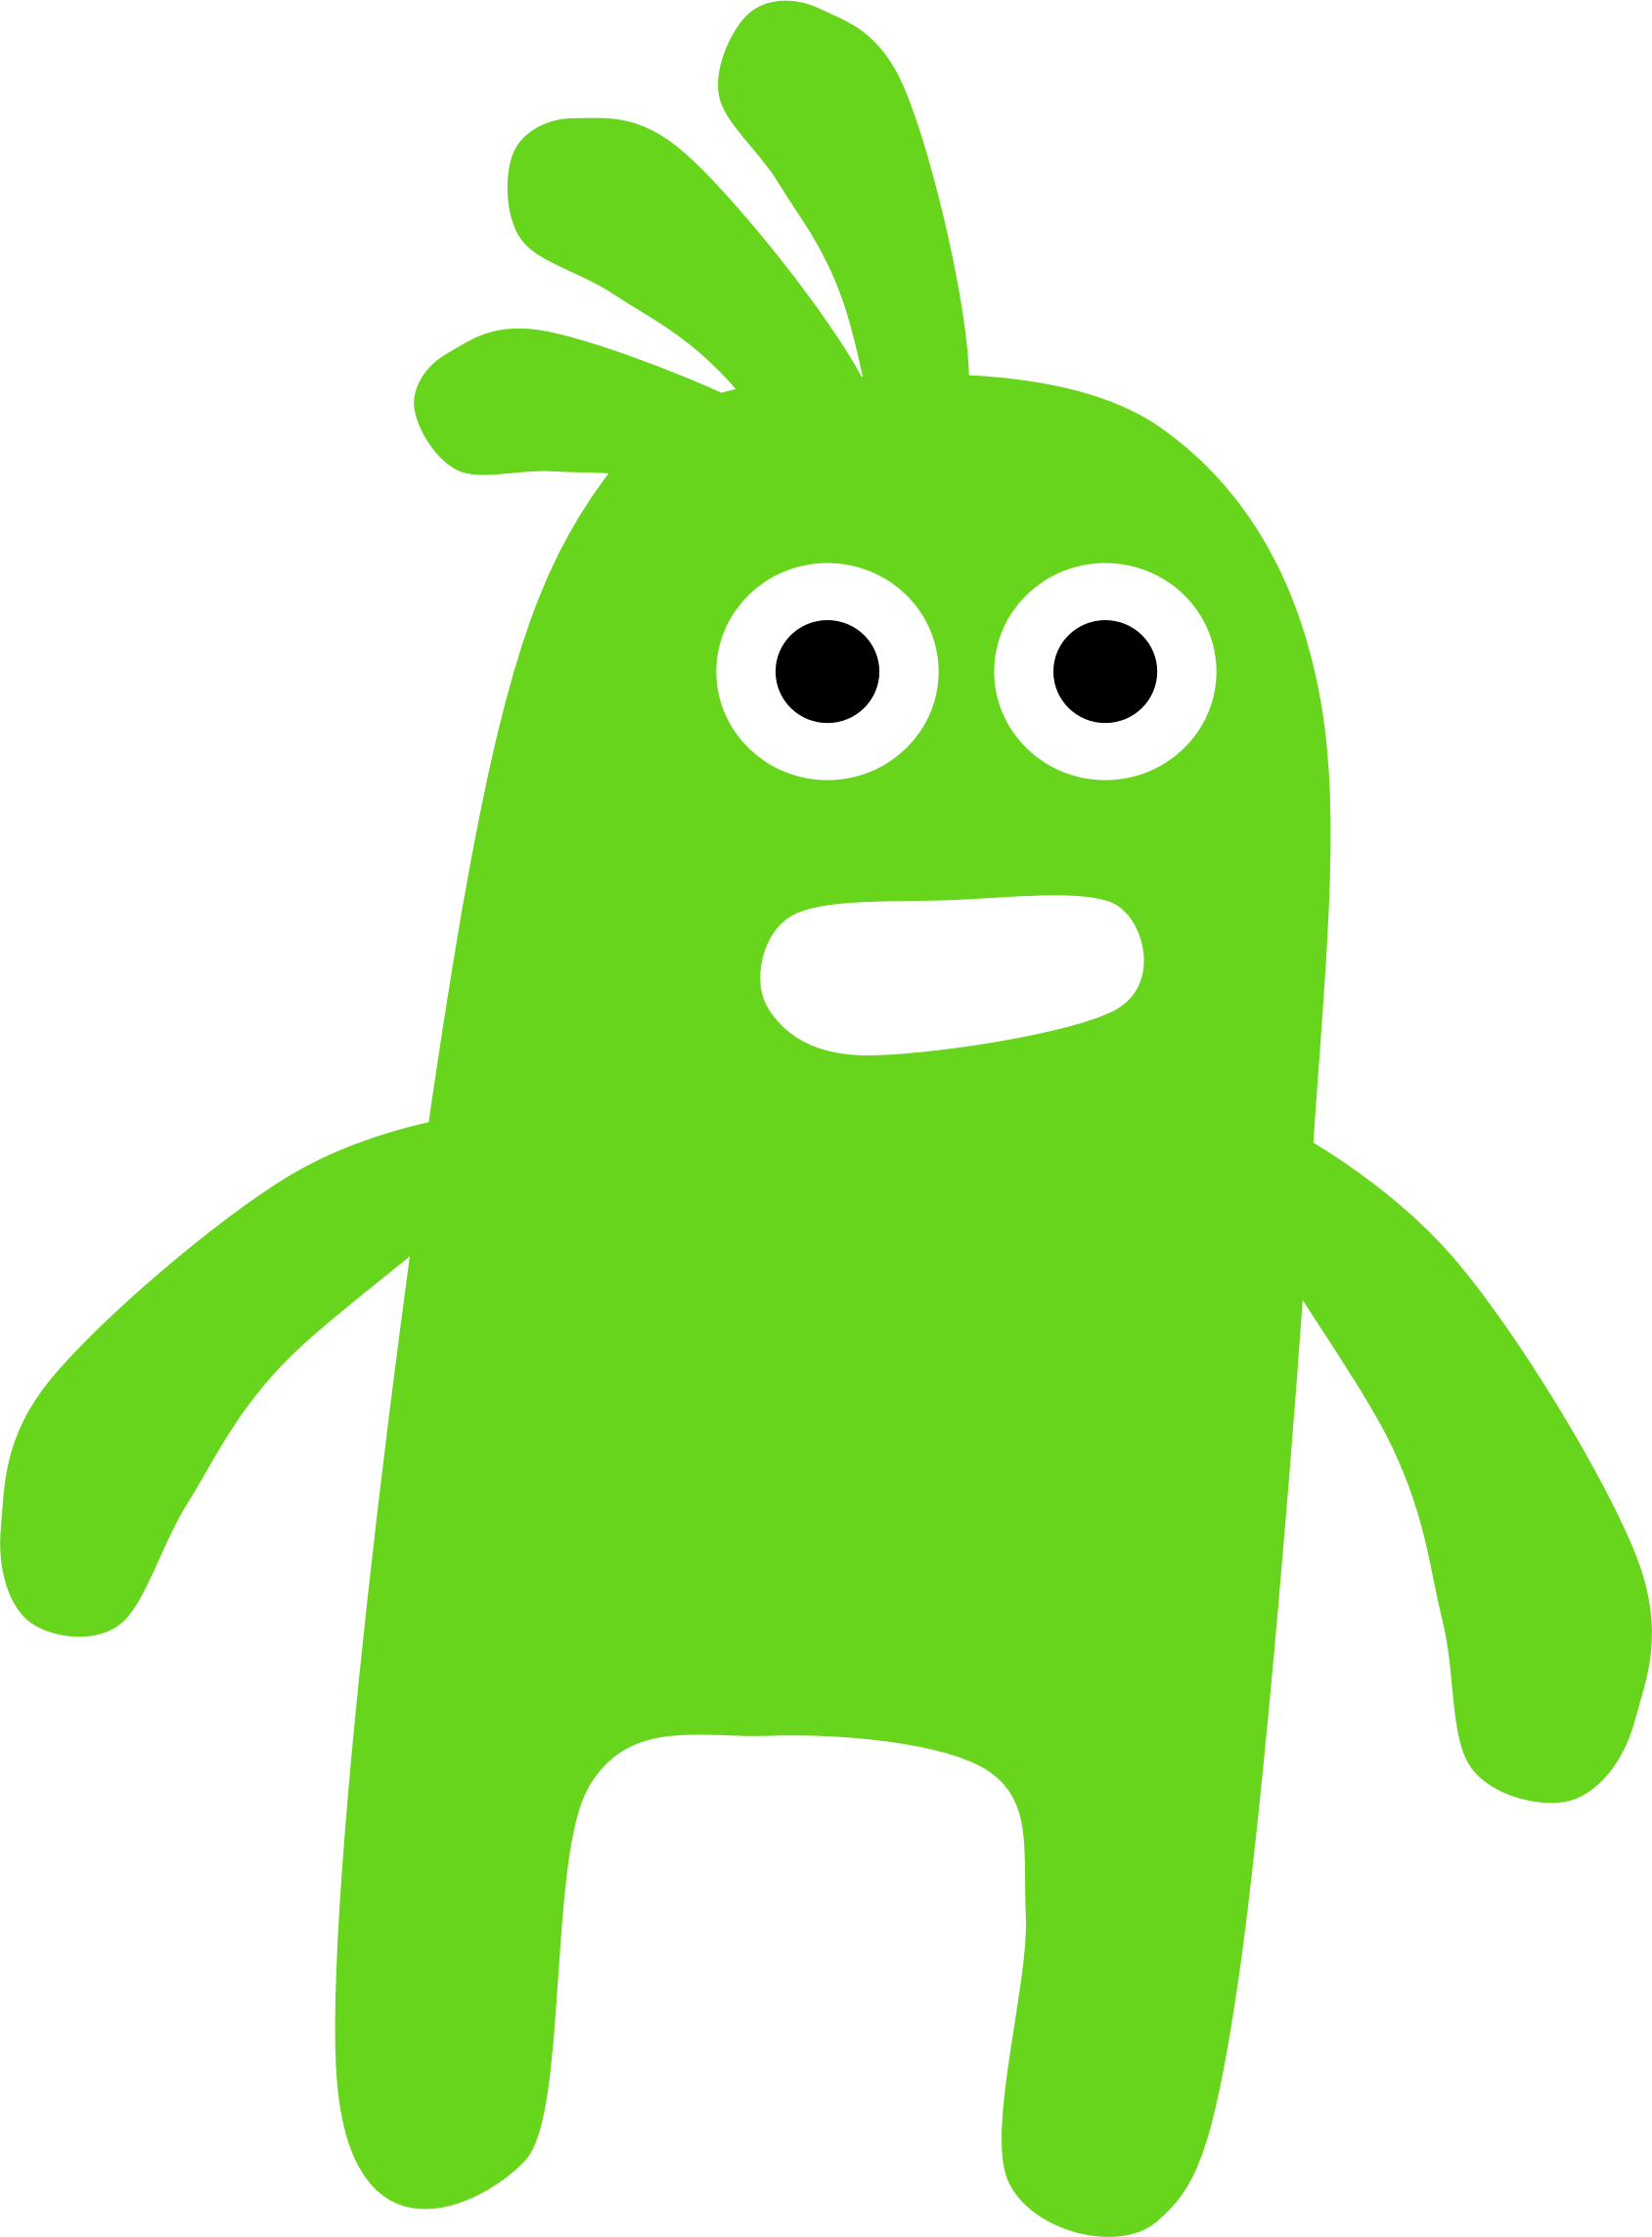 Green monster png. Clipart big image